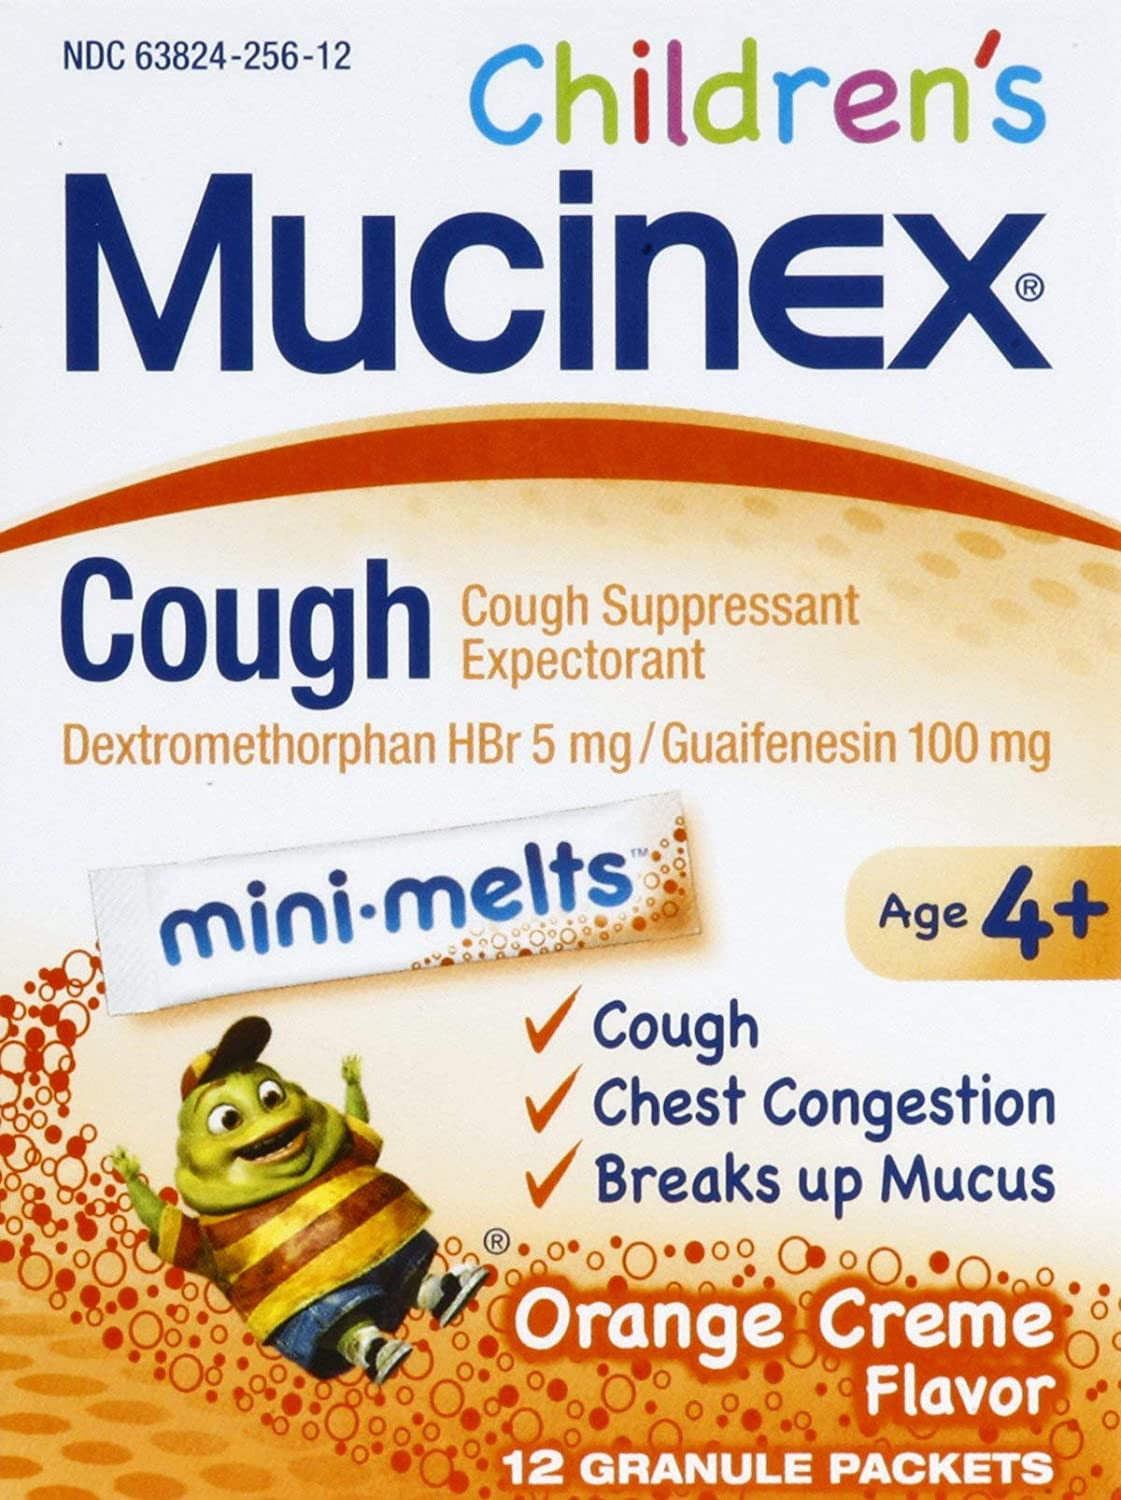 Top 13 Best Cough Syrup For Kids (2020 Reviews & Buying Guide) 6